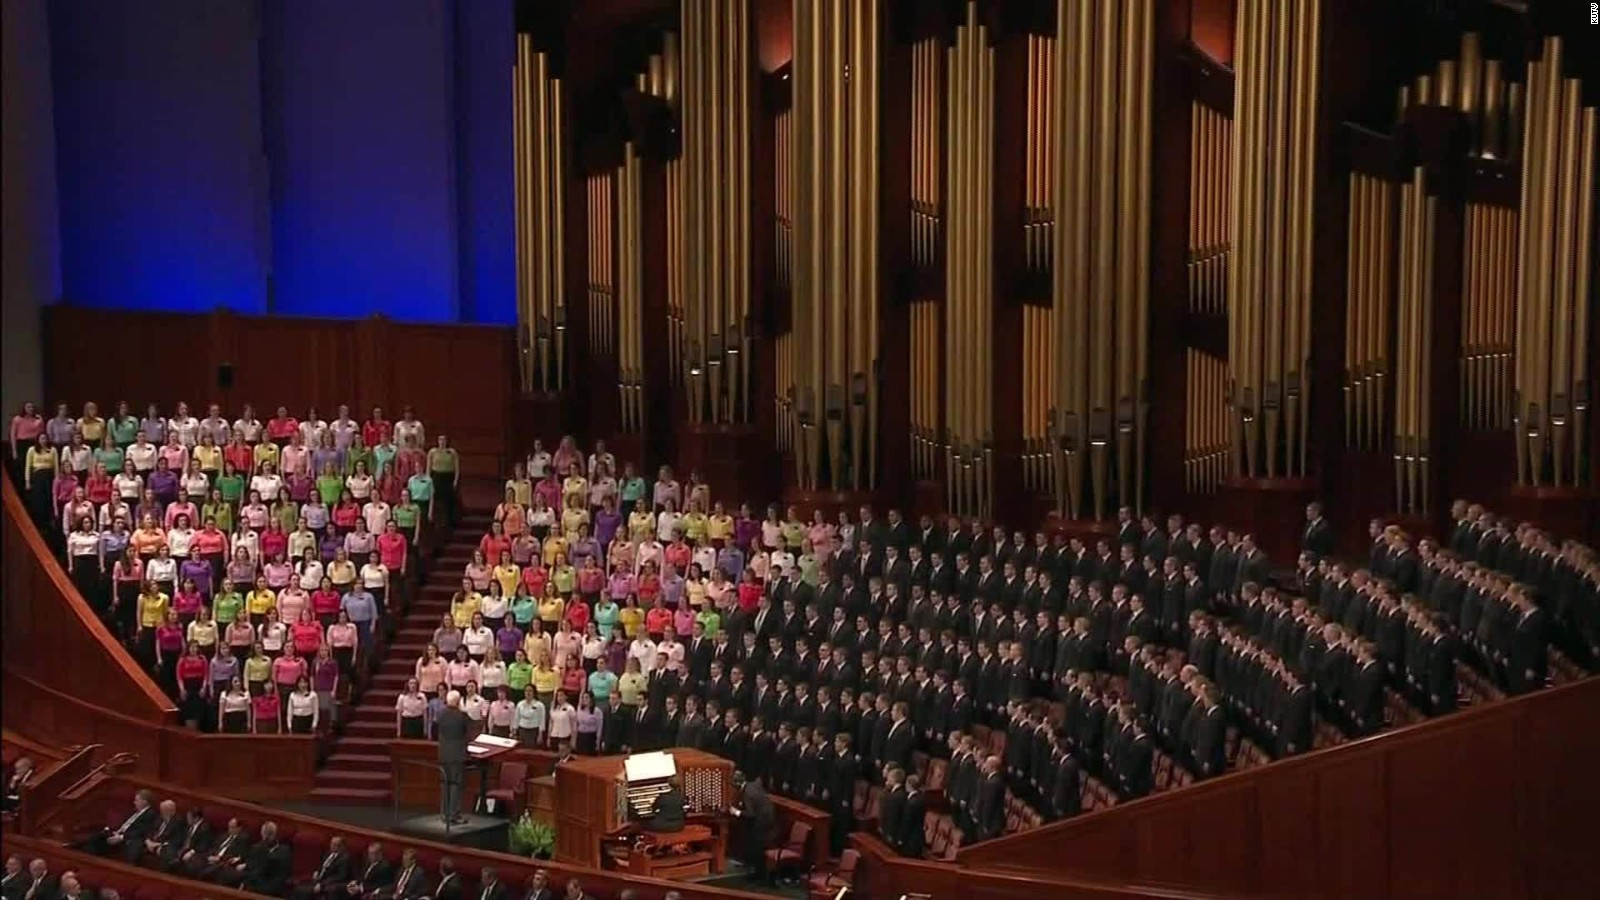 Mormons leaving church to protest same sex